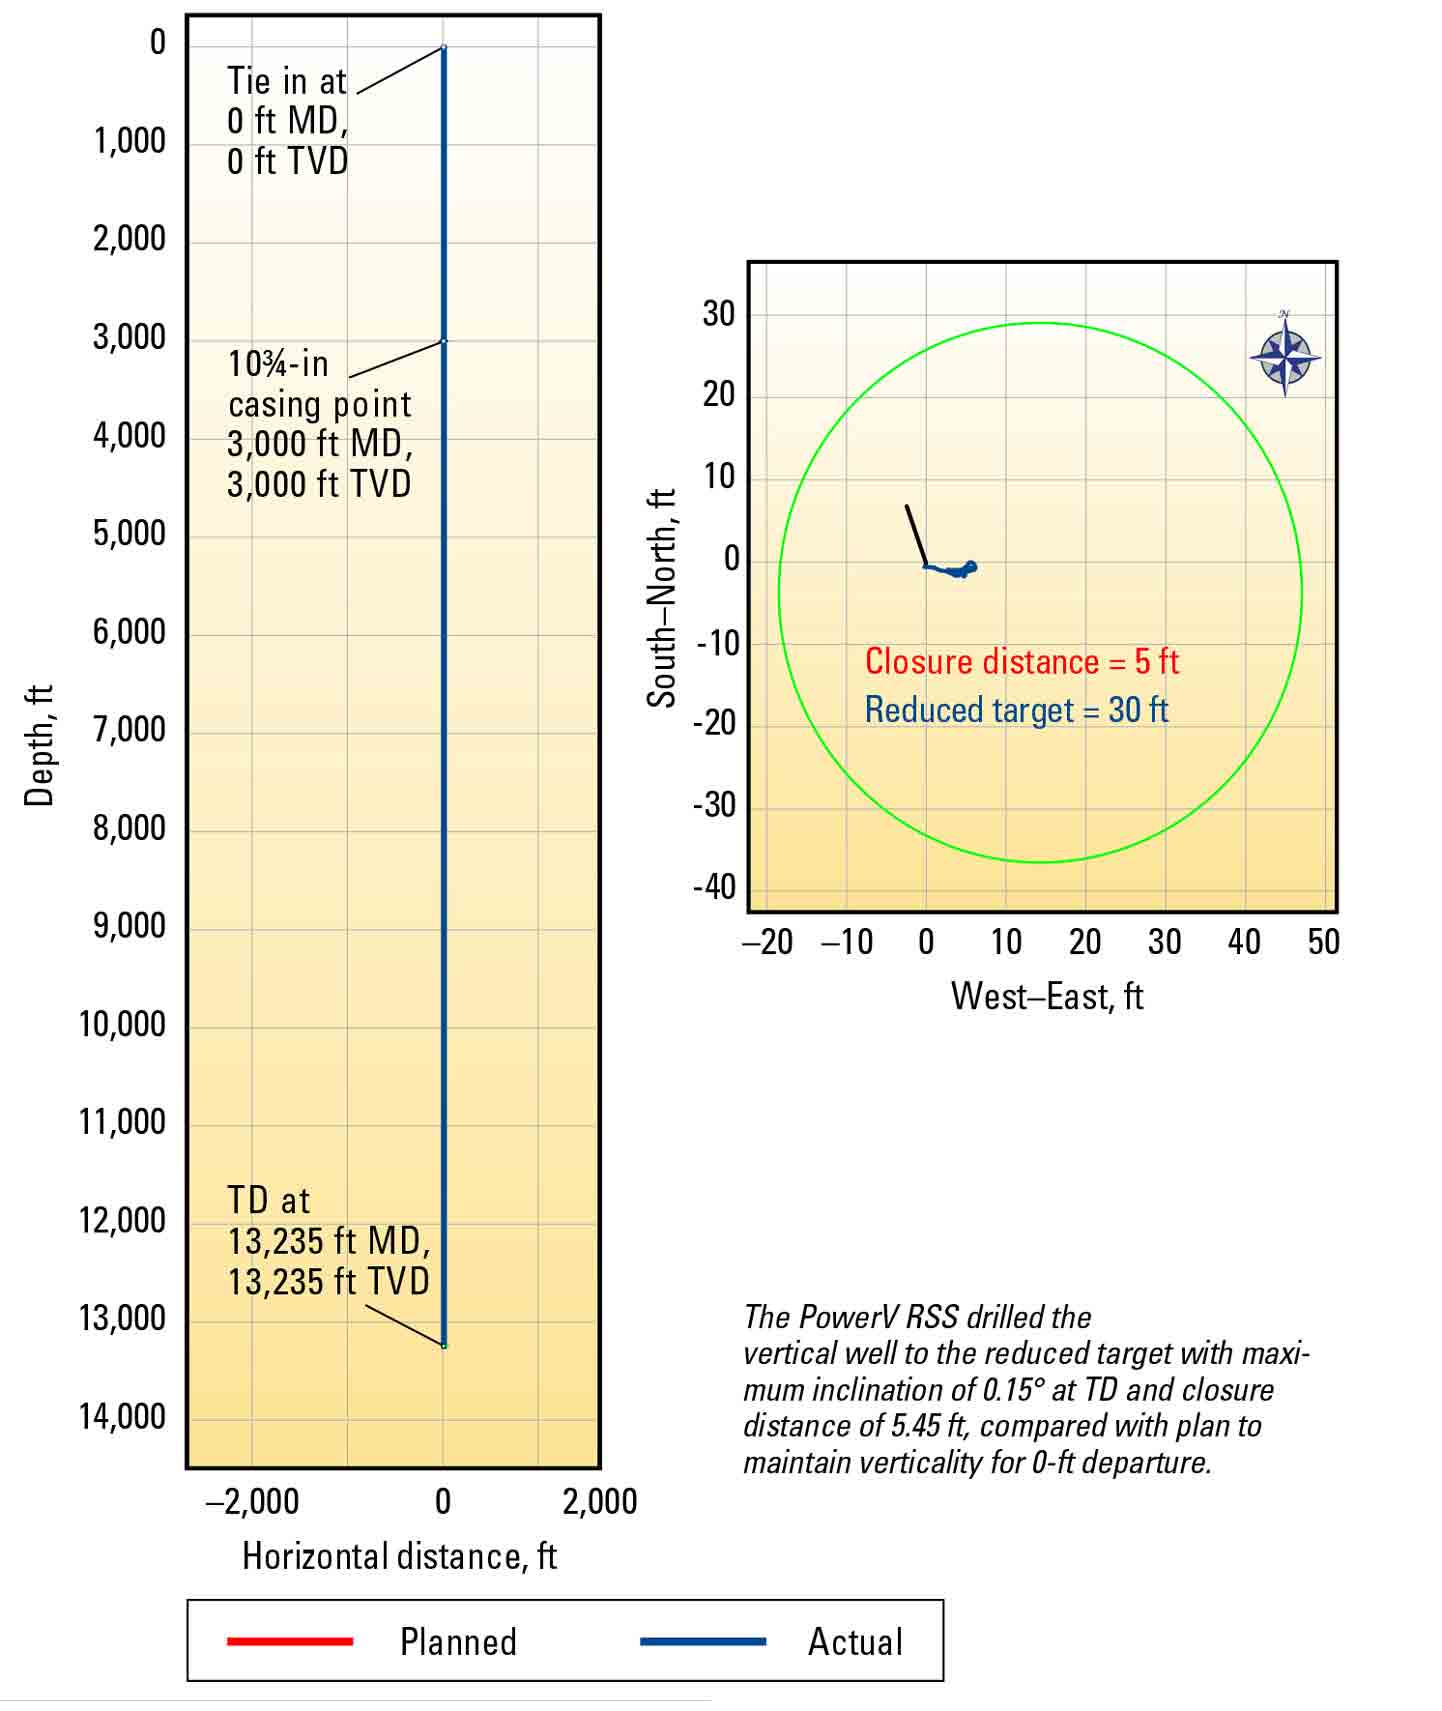 Graph: Vertical Drilling System Achieves 0.15° Inclination, Minimizing Departure at 5.45 ft in 13,235-ft Well - PowerV system automatic inclination hold maintains verticality